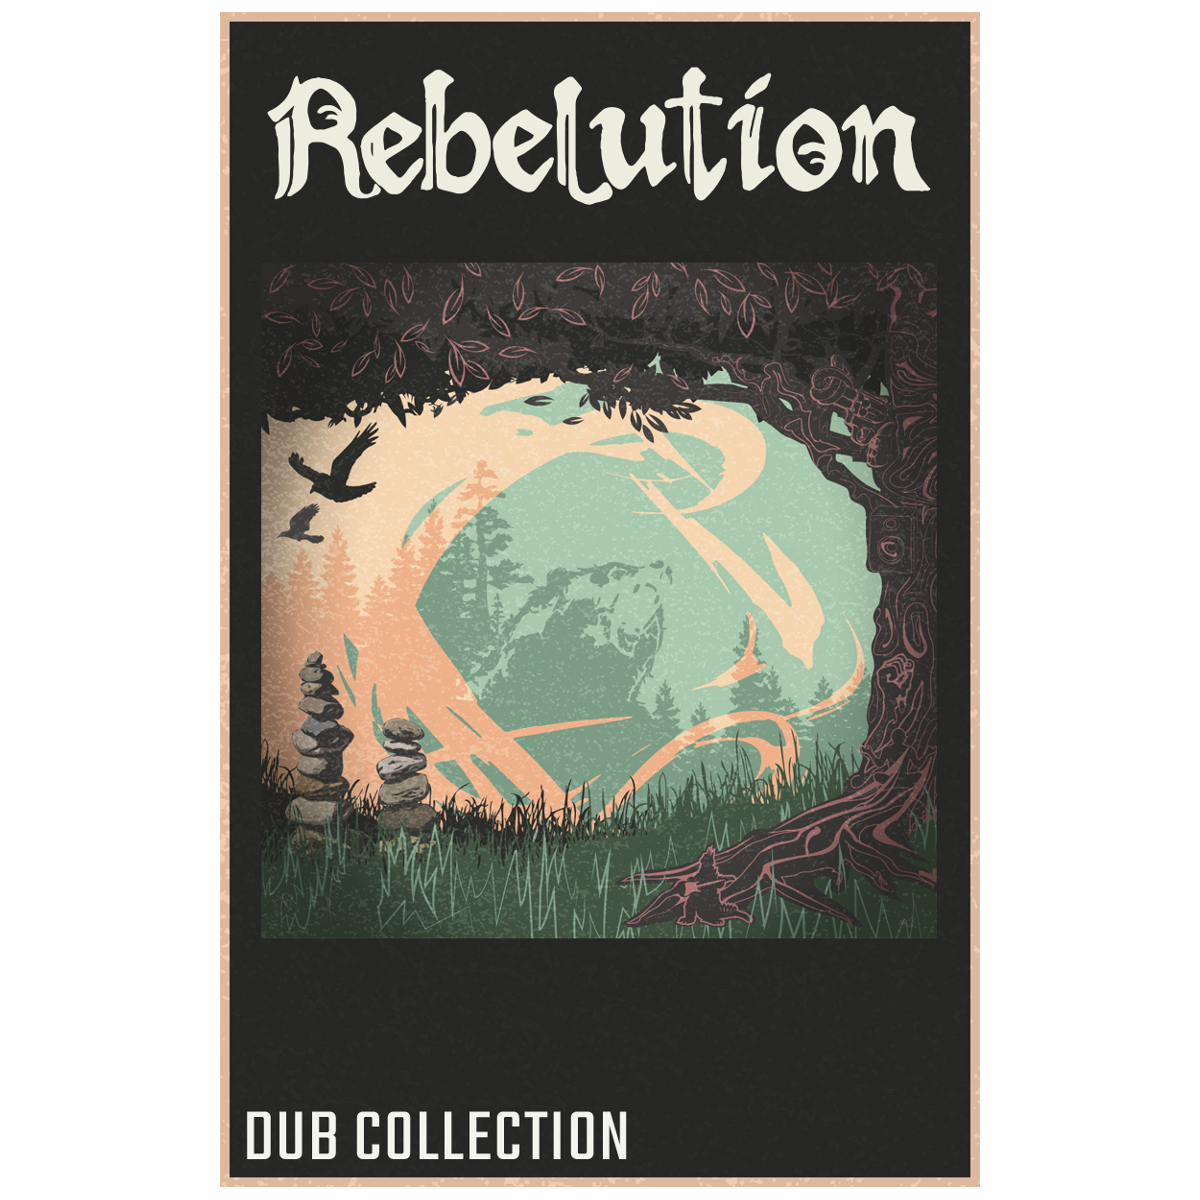 Dub Collection Poster